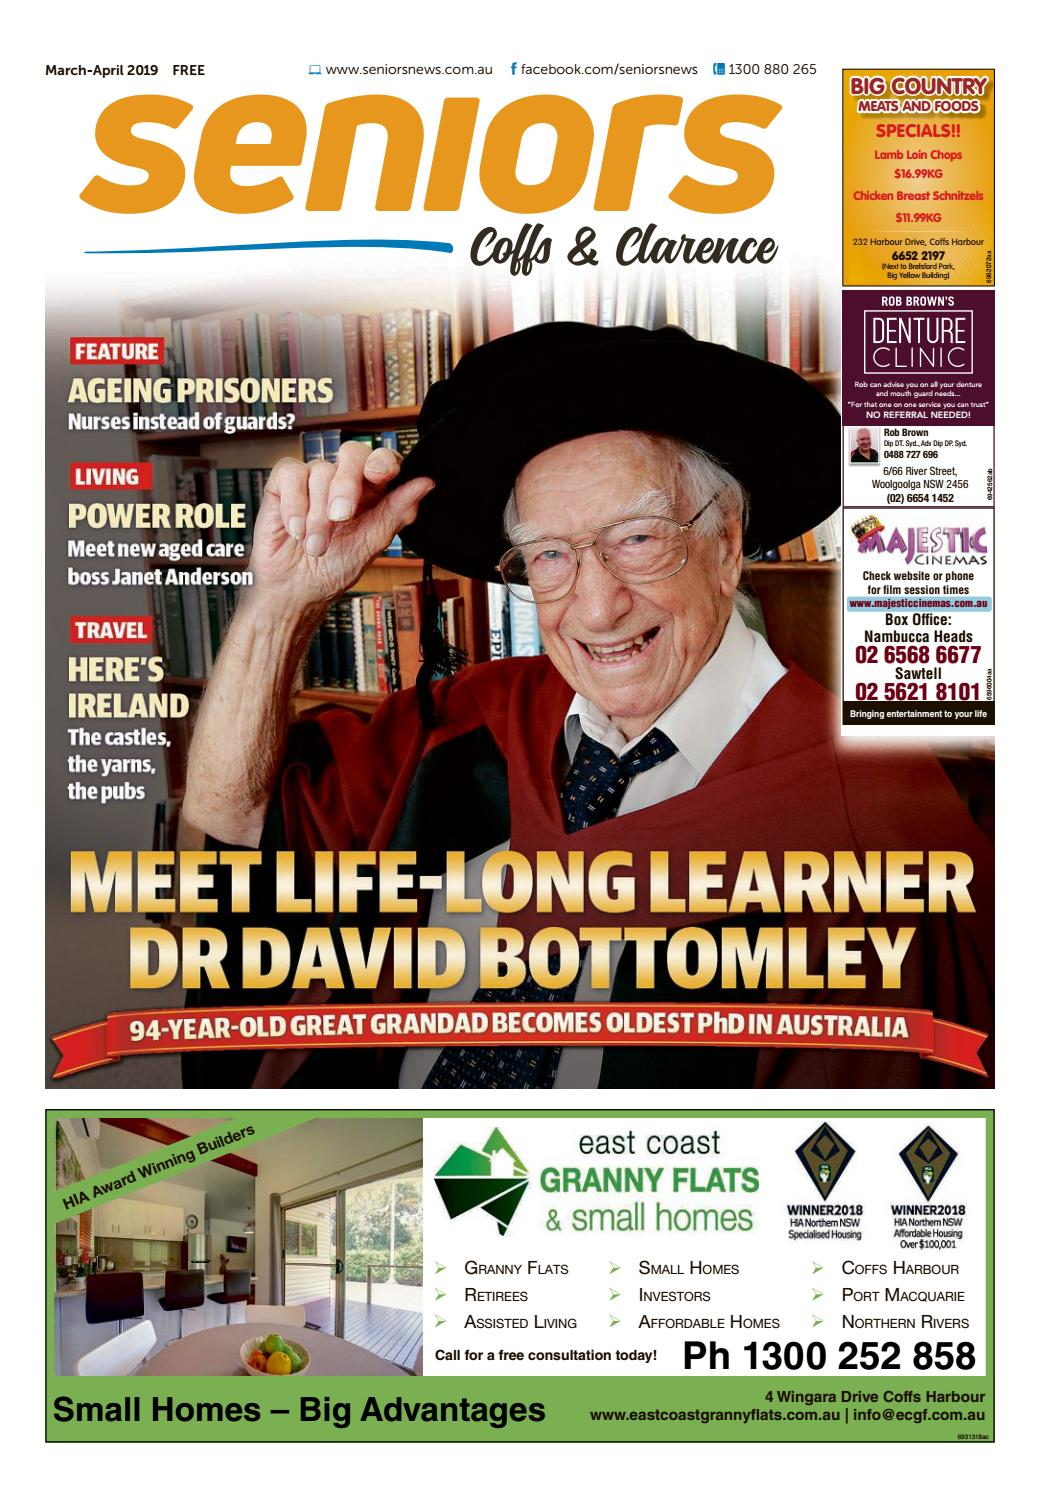 Coffs & Clarence, March-April 2019 by seniors - issuu